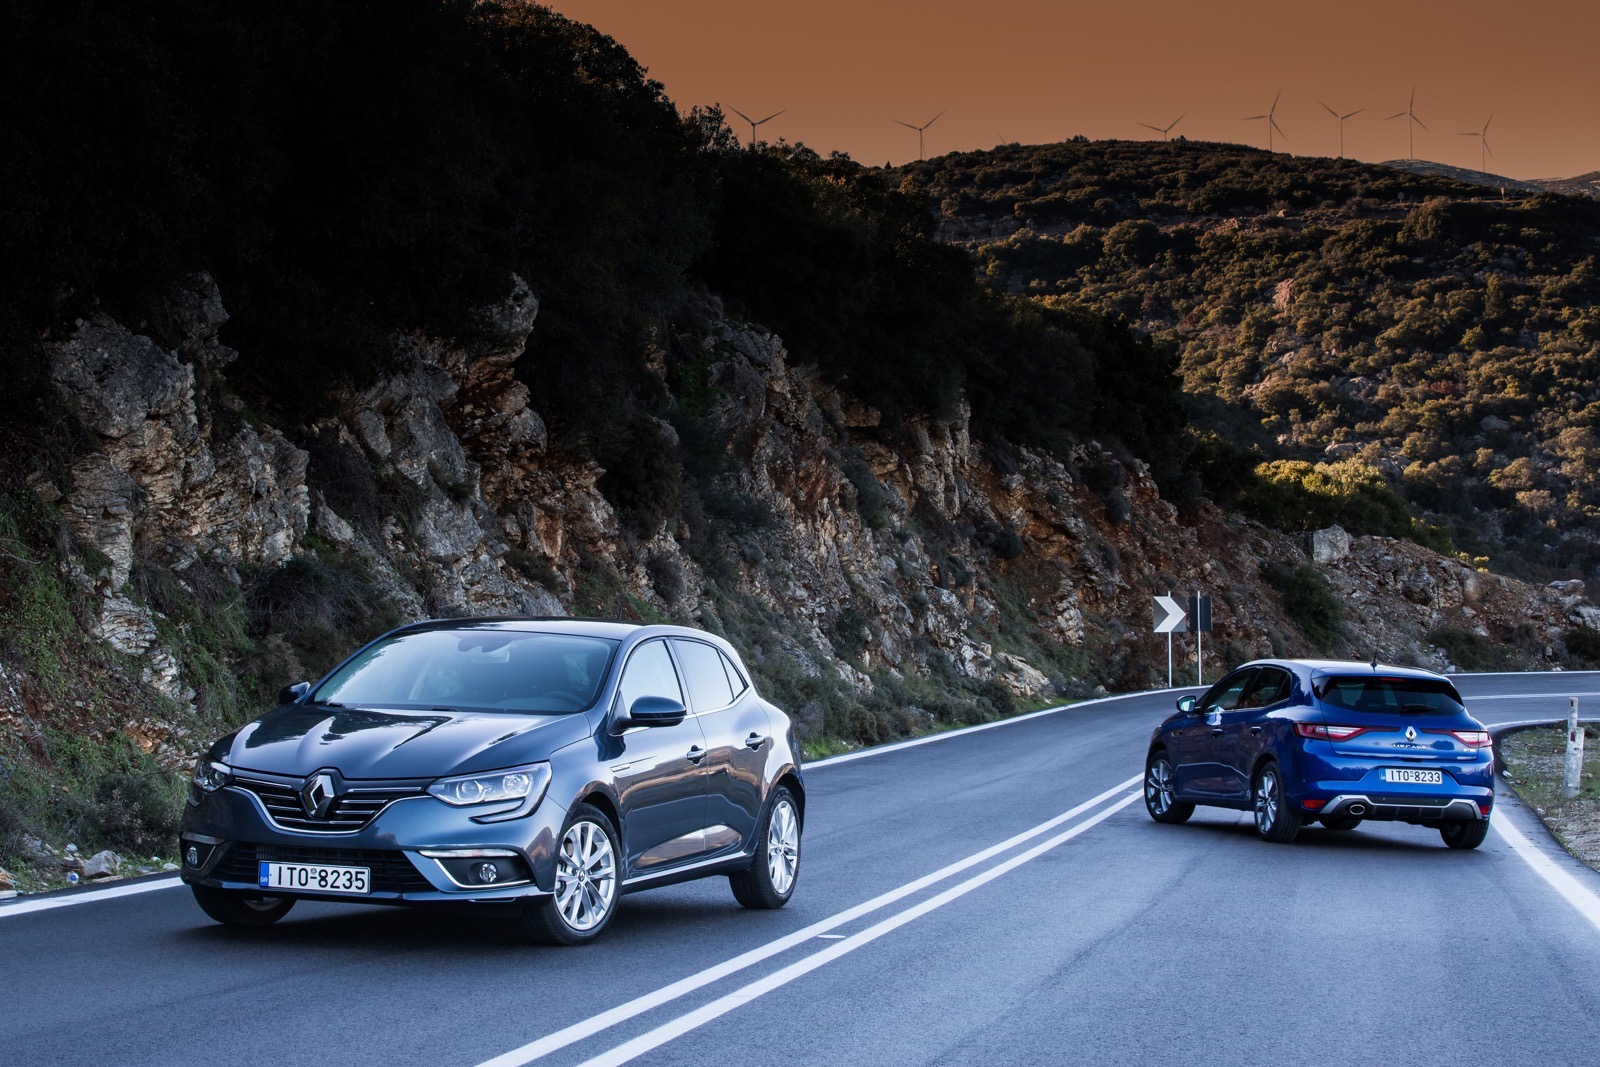 First_Drive_Renault_Megane_10